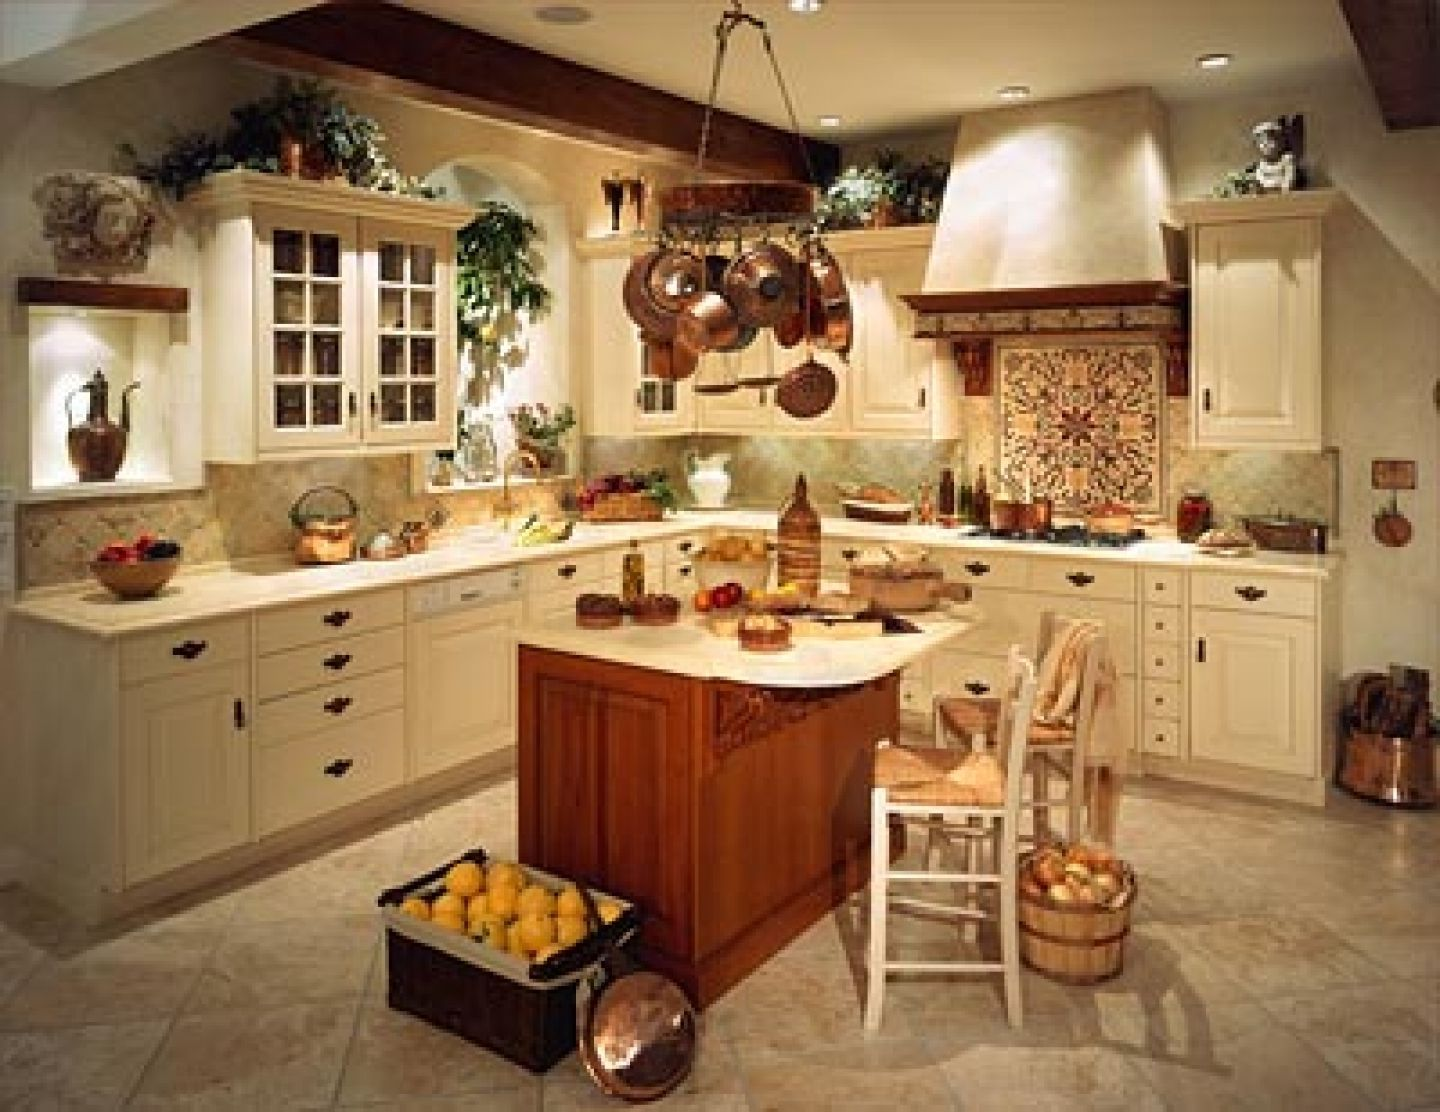 kitchen decorating themes pictures italian kitchen decor chef kitchen decor kitchen decor themes on kitchen makeover ideas id=98487